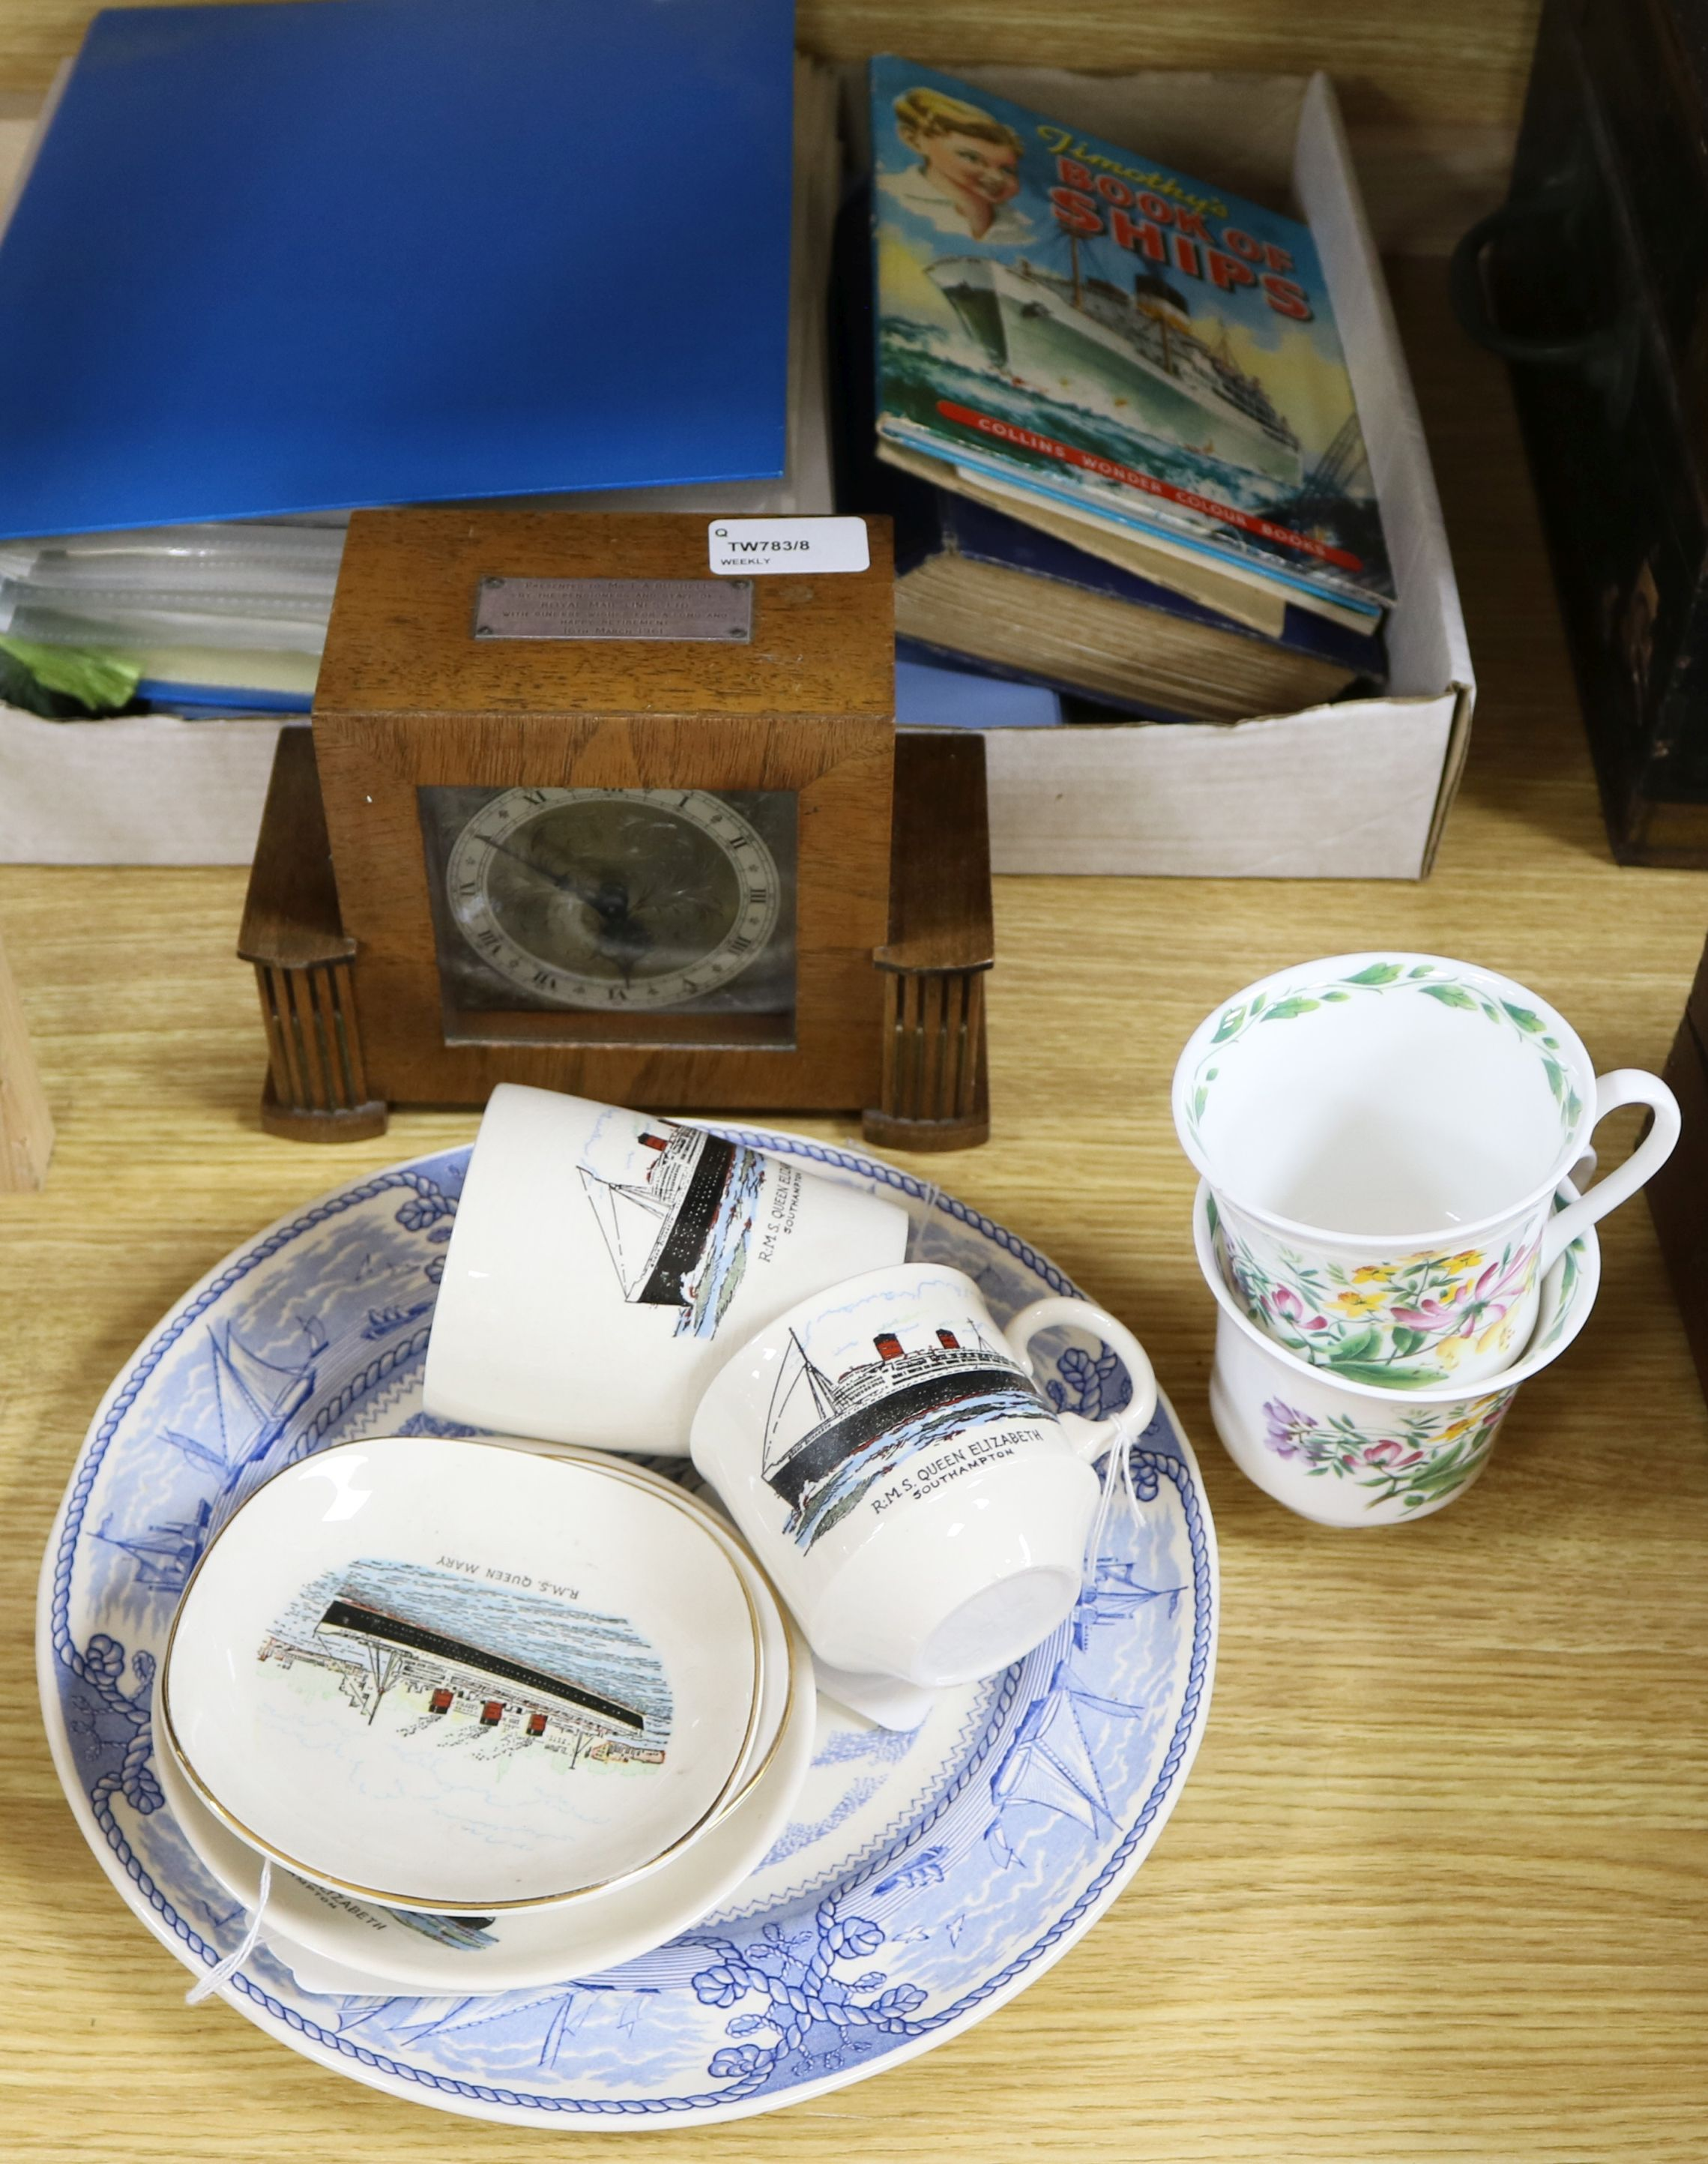 Lot 127 - A large collection of shipping ephemera, including a RMS Queen Mary ironstone plate and two pin